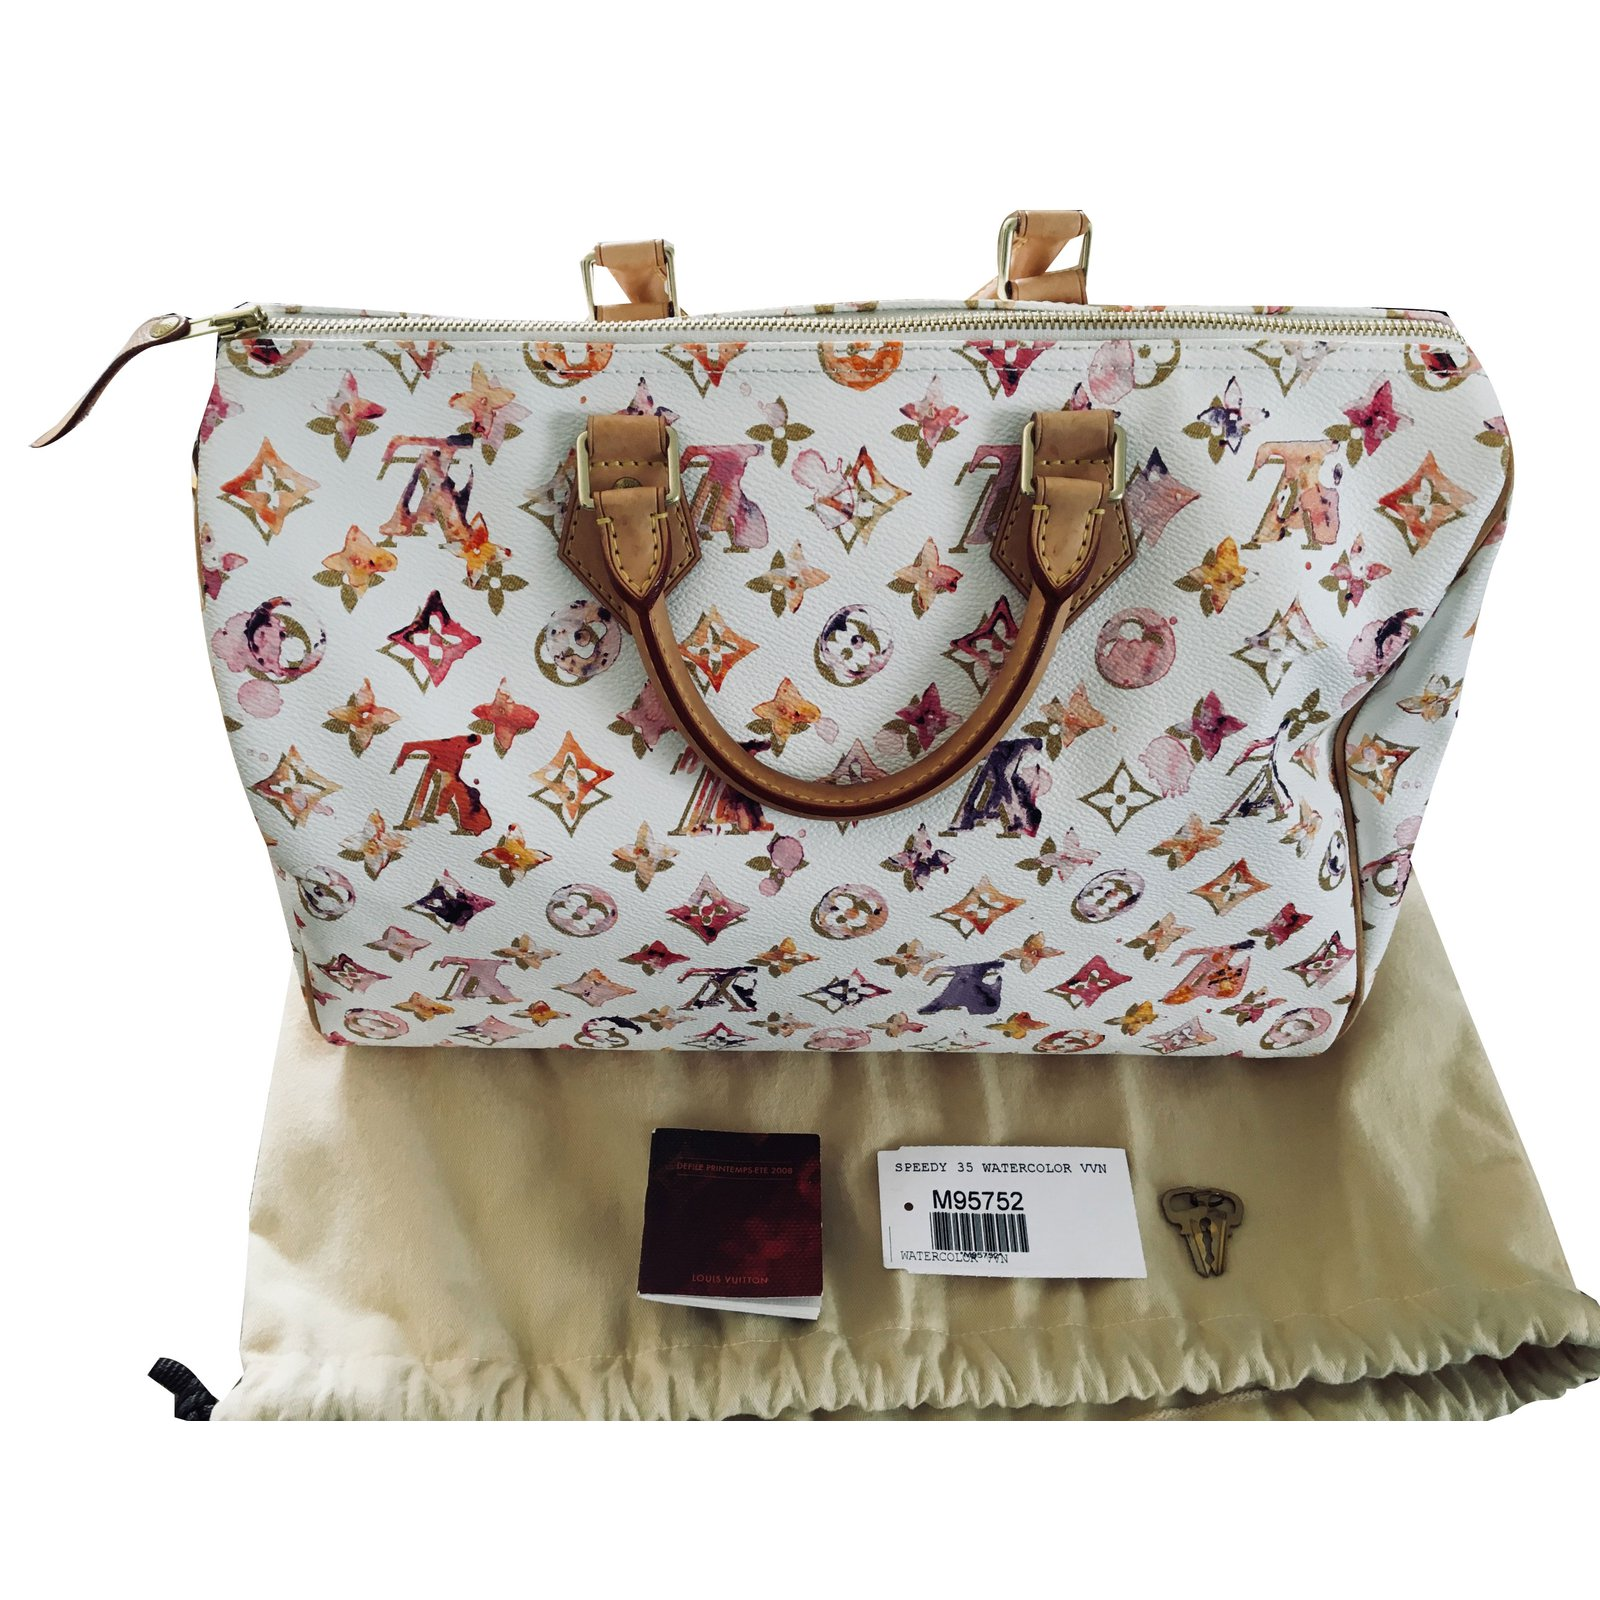 9640a41a71bf Louis Vuitton SPEEDY Handbags Leather